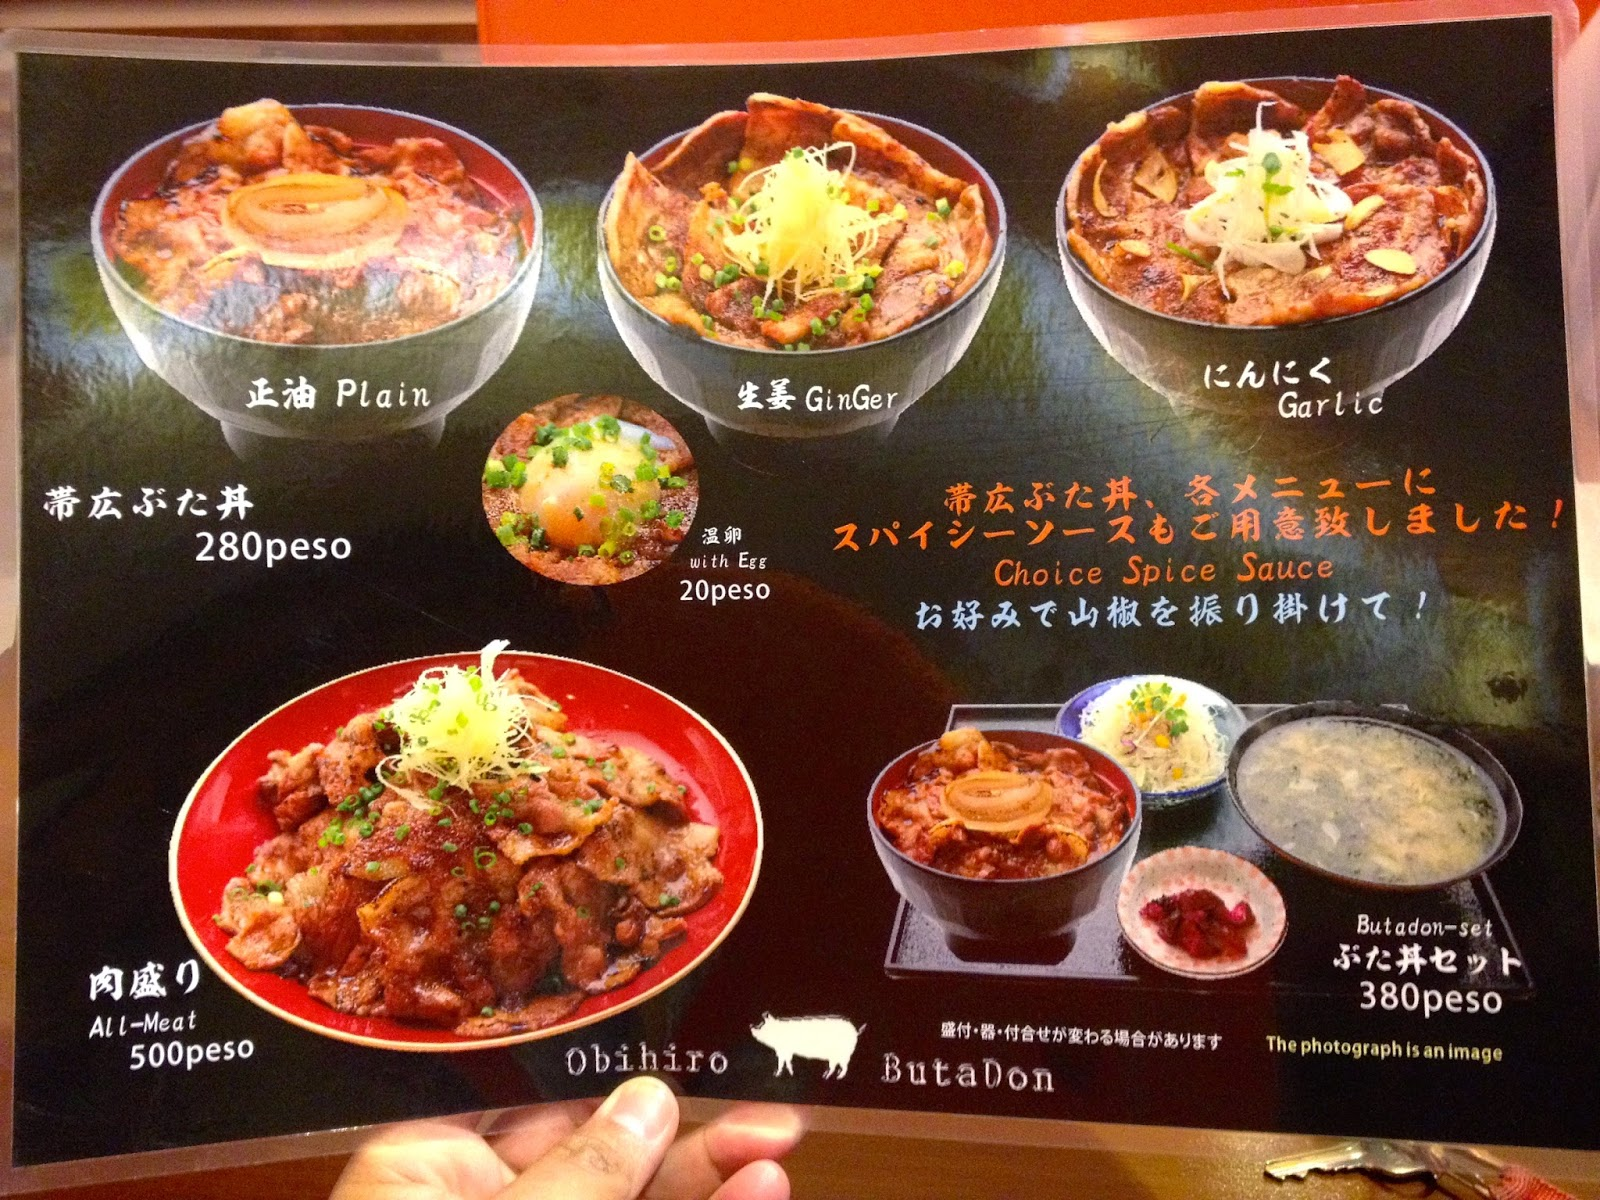 Menu at Obihiro Butadon Panagdait